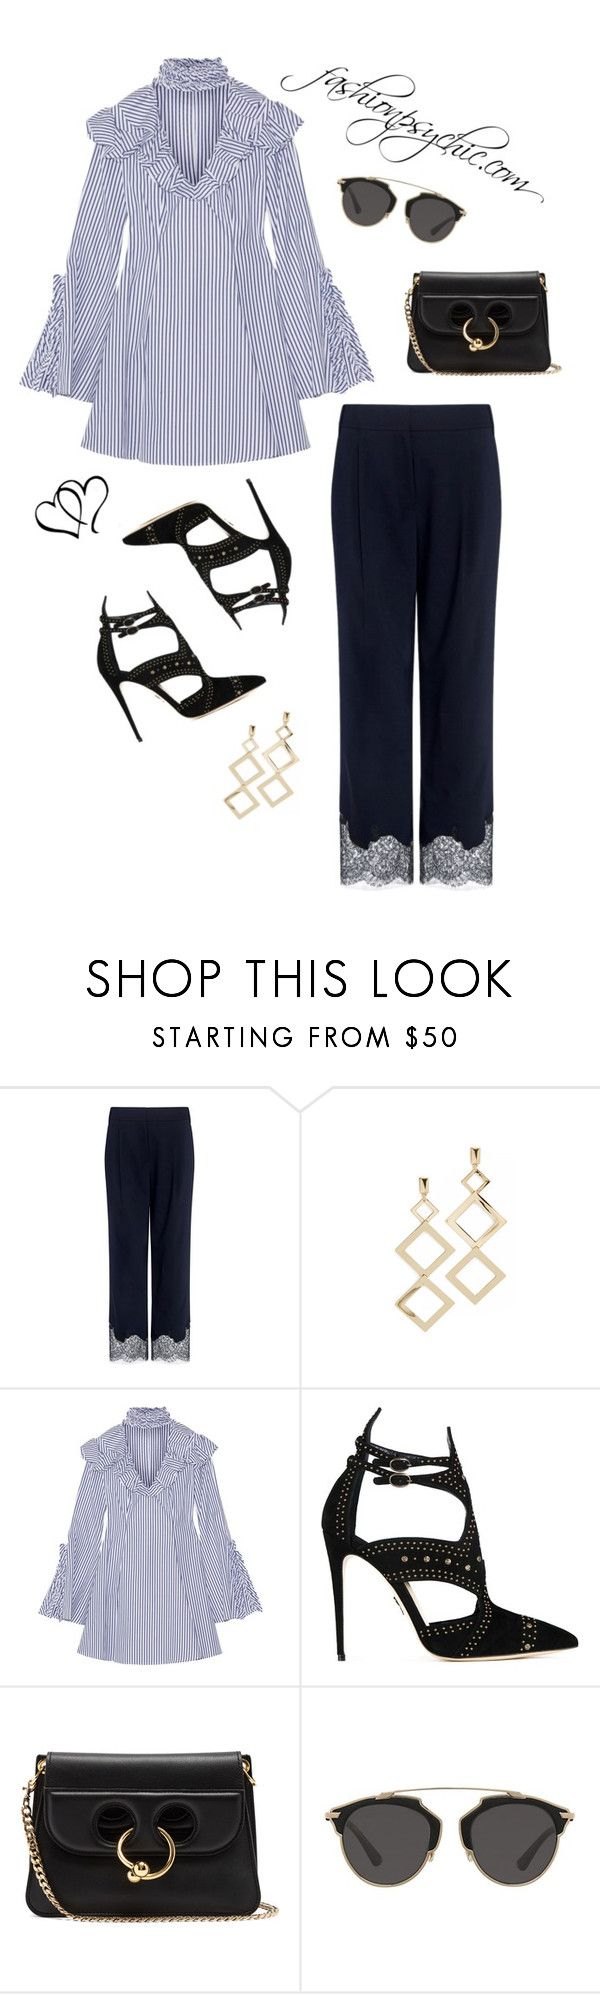 """."" by fashionpsychic on Polyvore featuring TIBI, Adia Kibur, Caroline Constas, Paul Andrew, J.W. Anderson and Christian Dior"